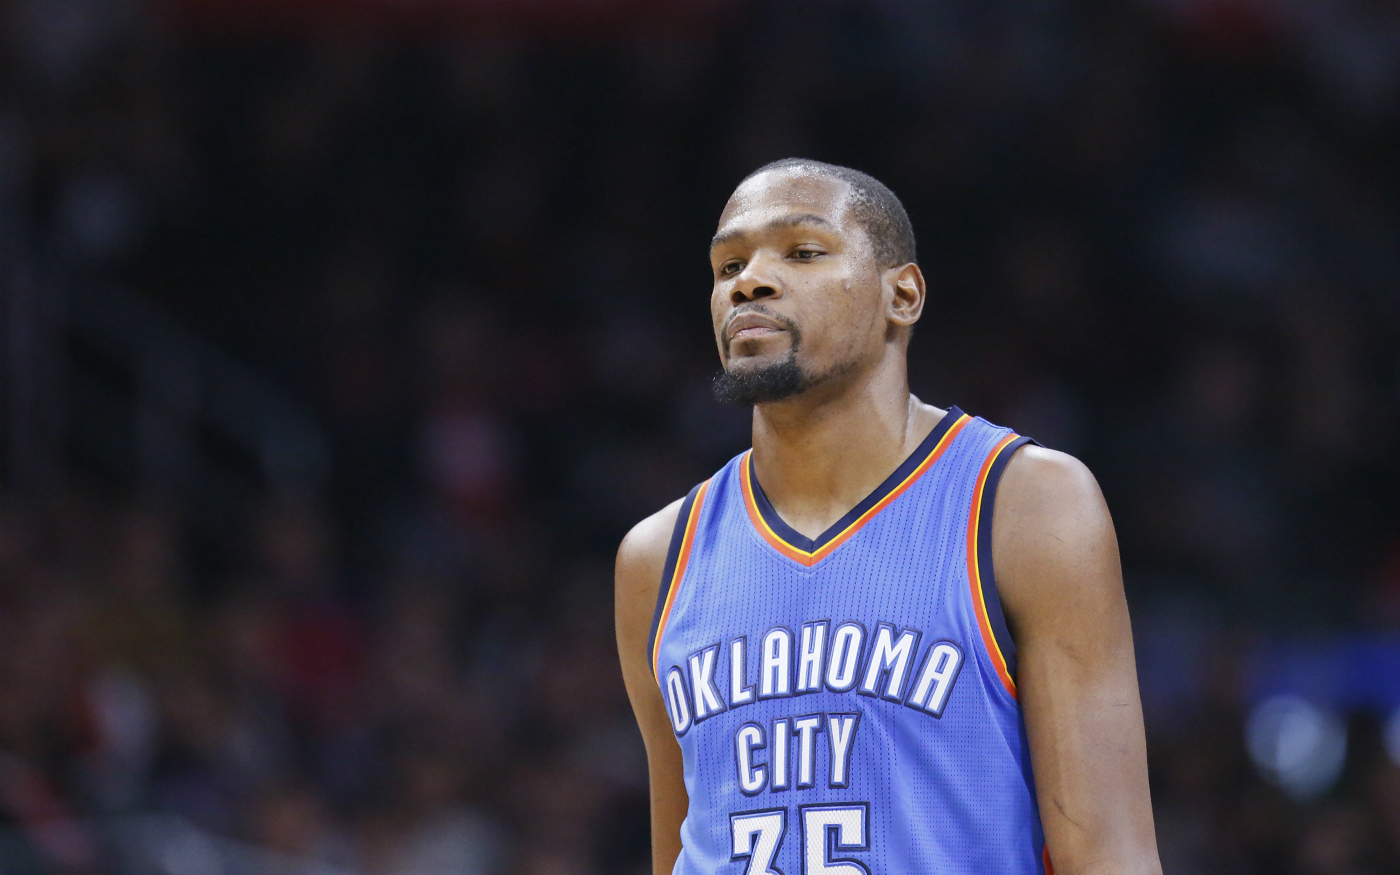 Le jour où Kevin Durant a battu son record de points contre... Golden State